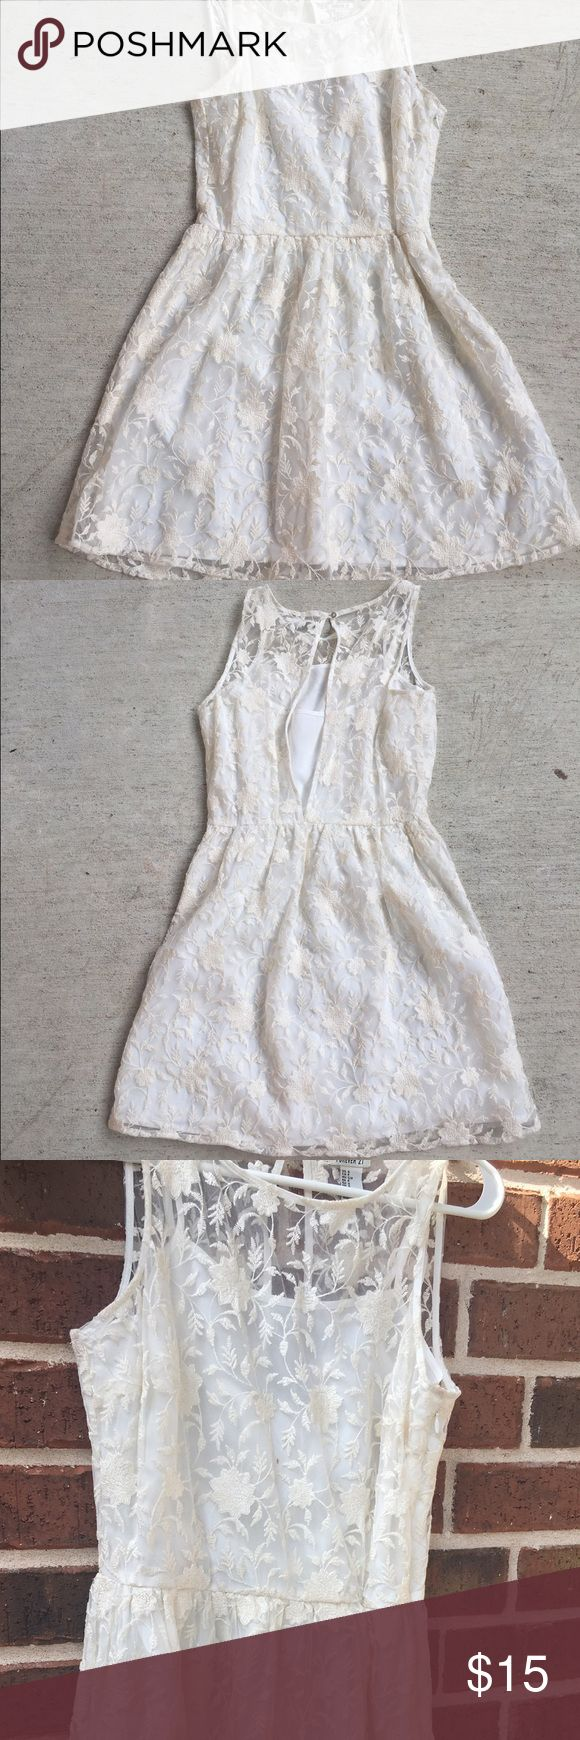 Midi Lace Dress Cute cream lace dress, only worn once 💎 Forever 21 Dresses Midi